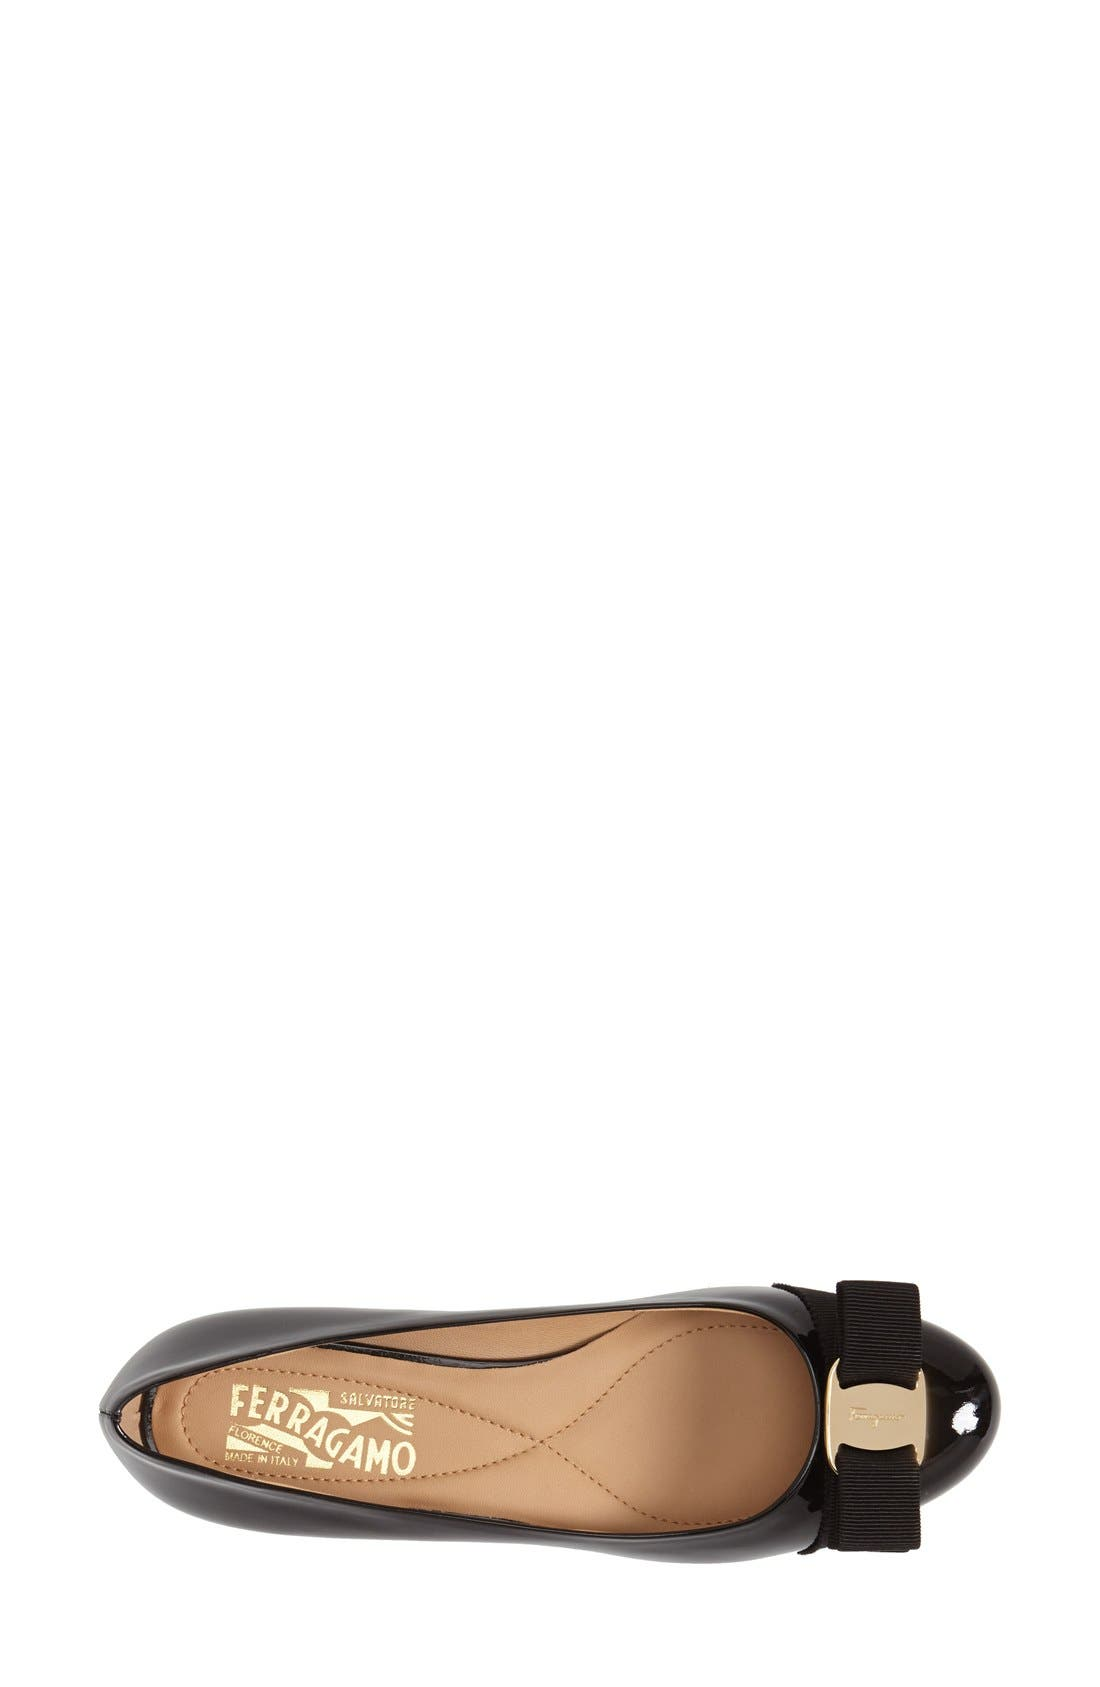 SALVATORE FERRAGAMO,                             Varina Leather Flat,                             Alternate thumbnail 2, color,                             NERO PATENT/ GOLD